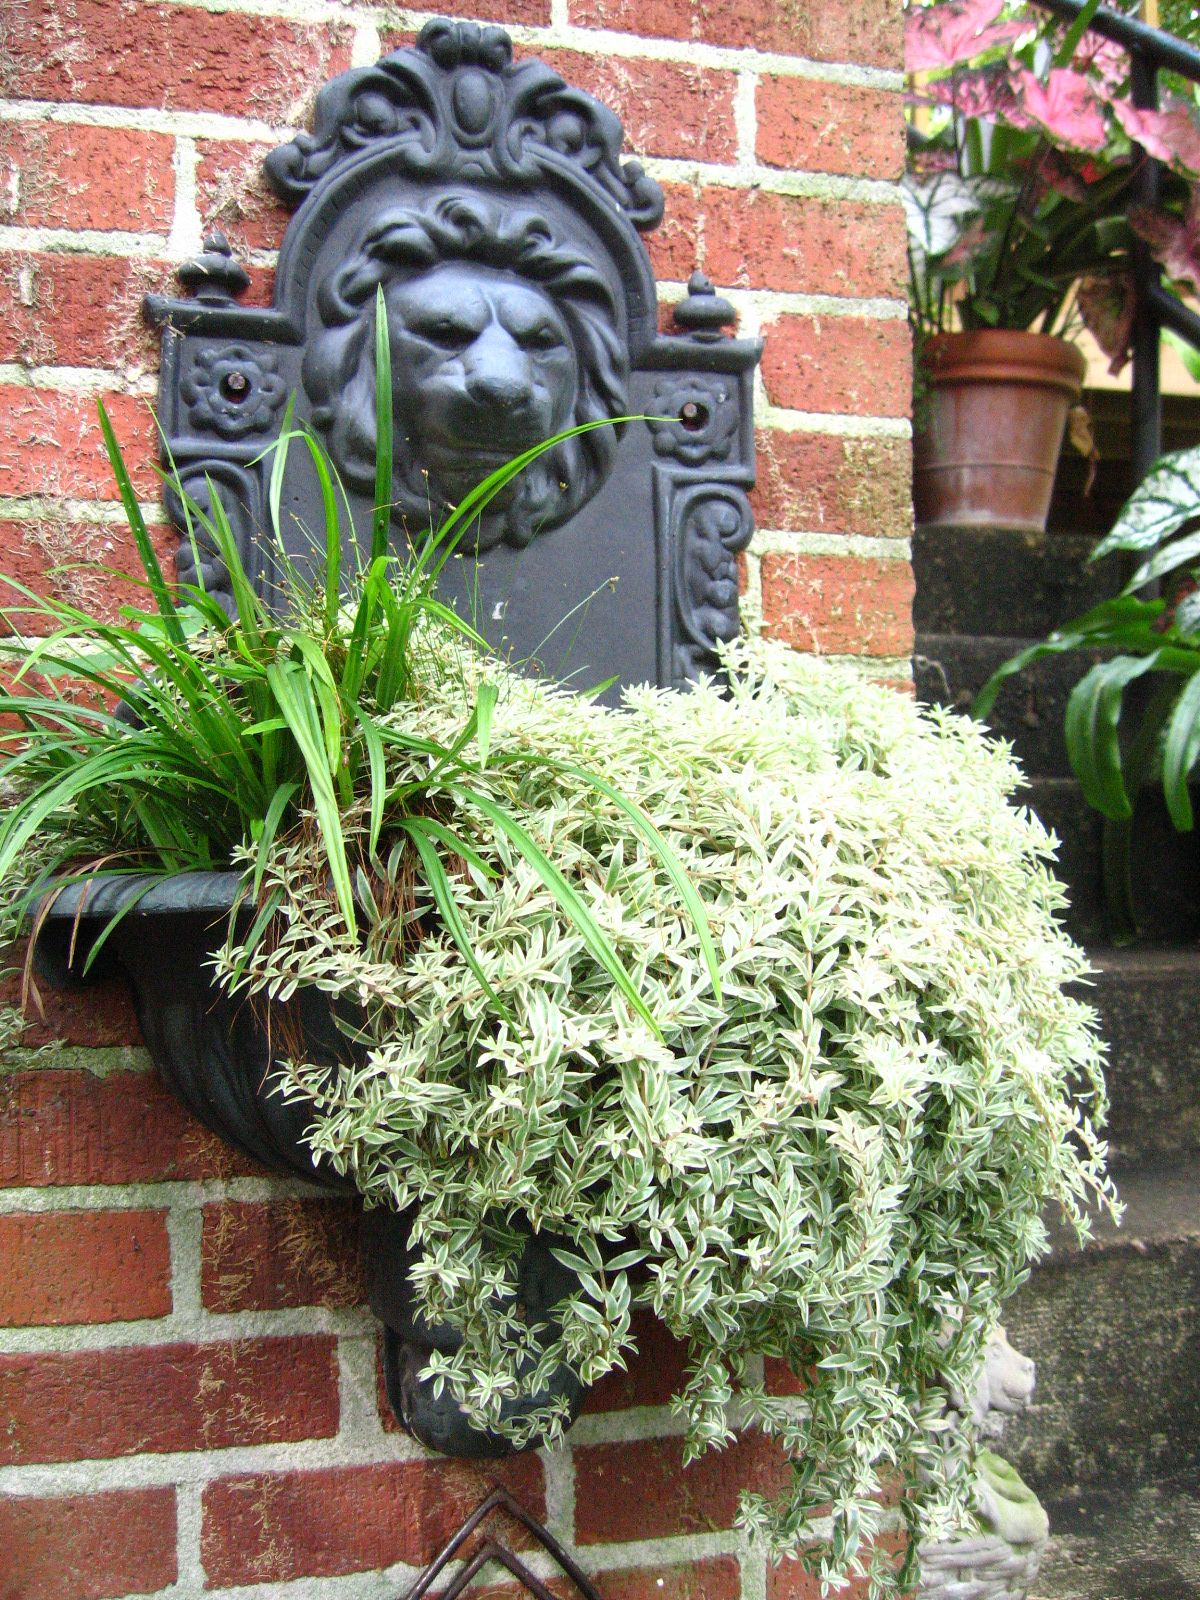 Pin by Rebecca King on Gardening-Containers | Pinterest